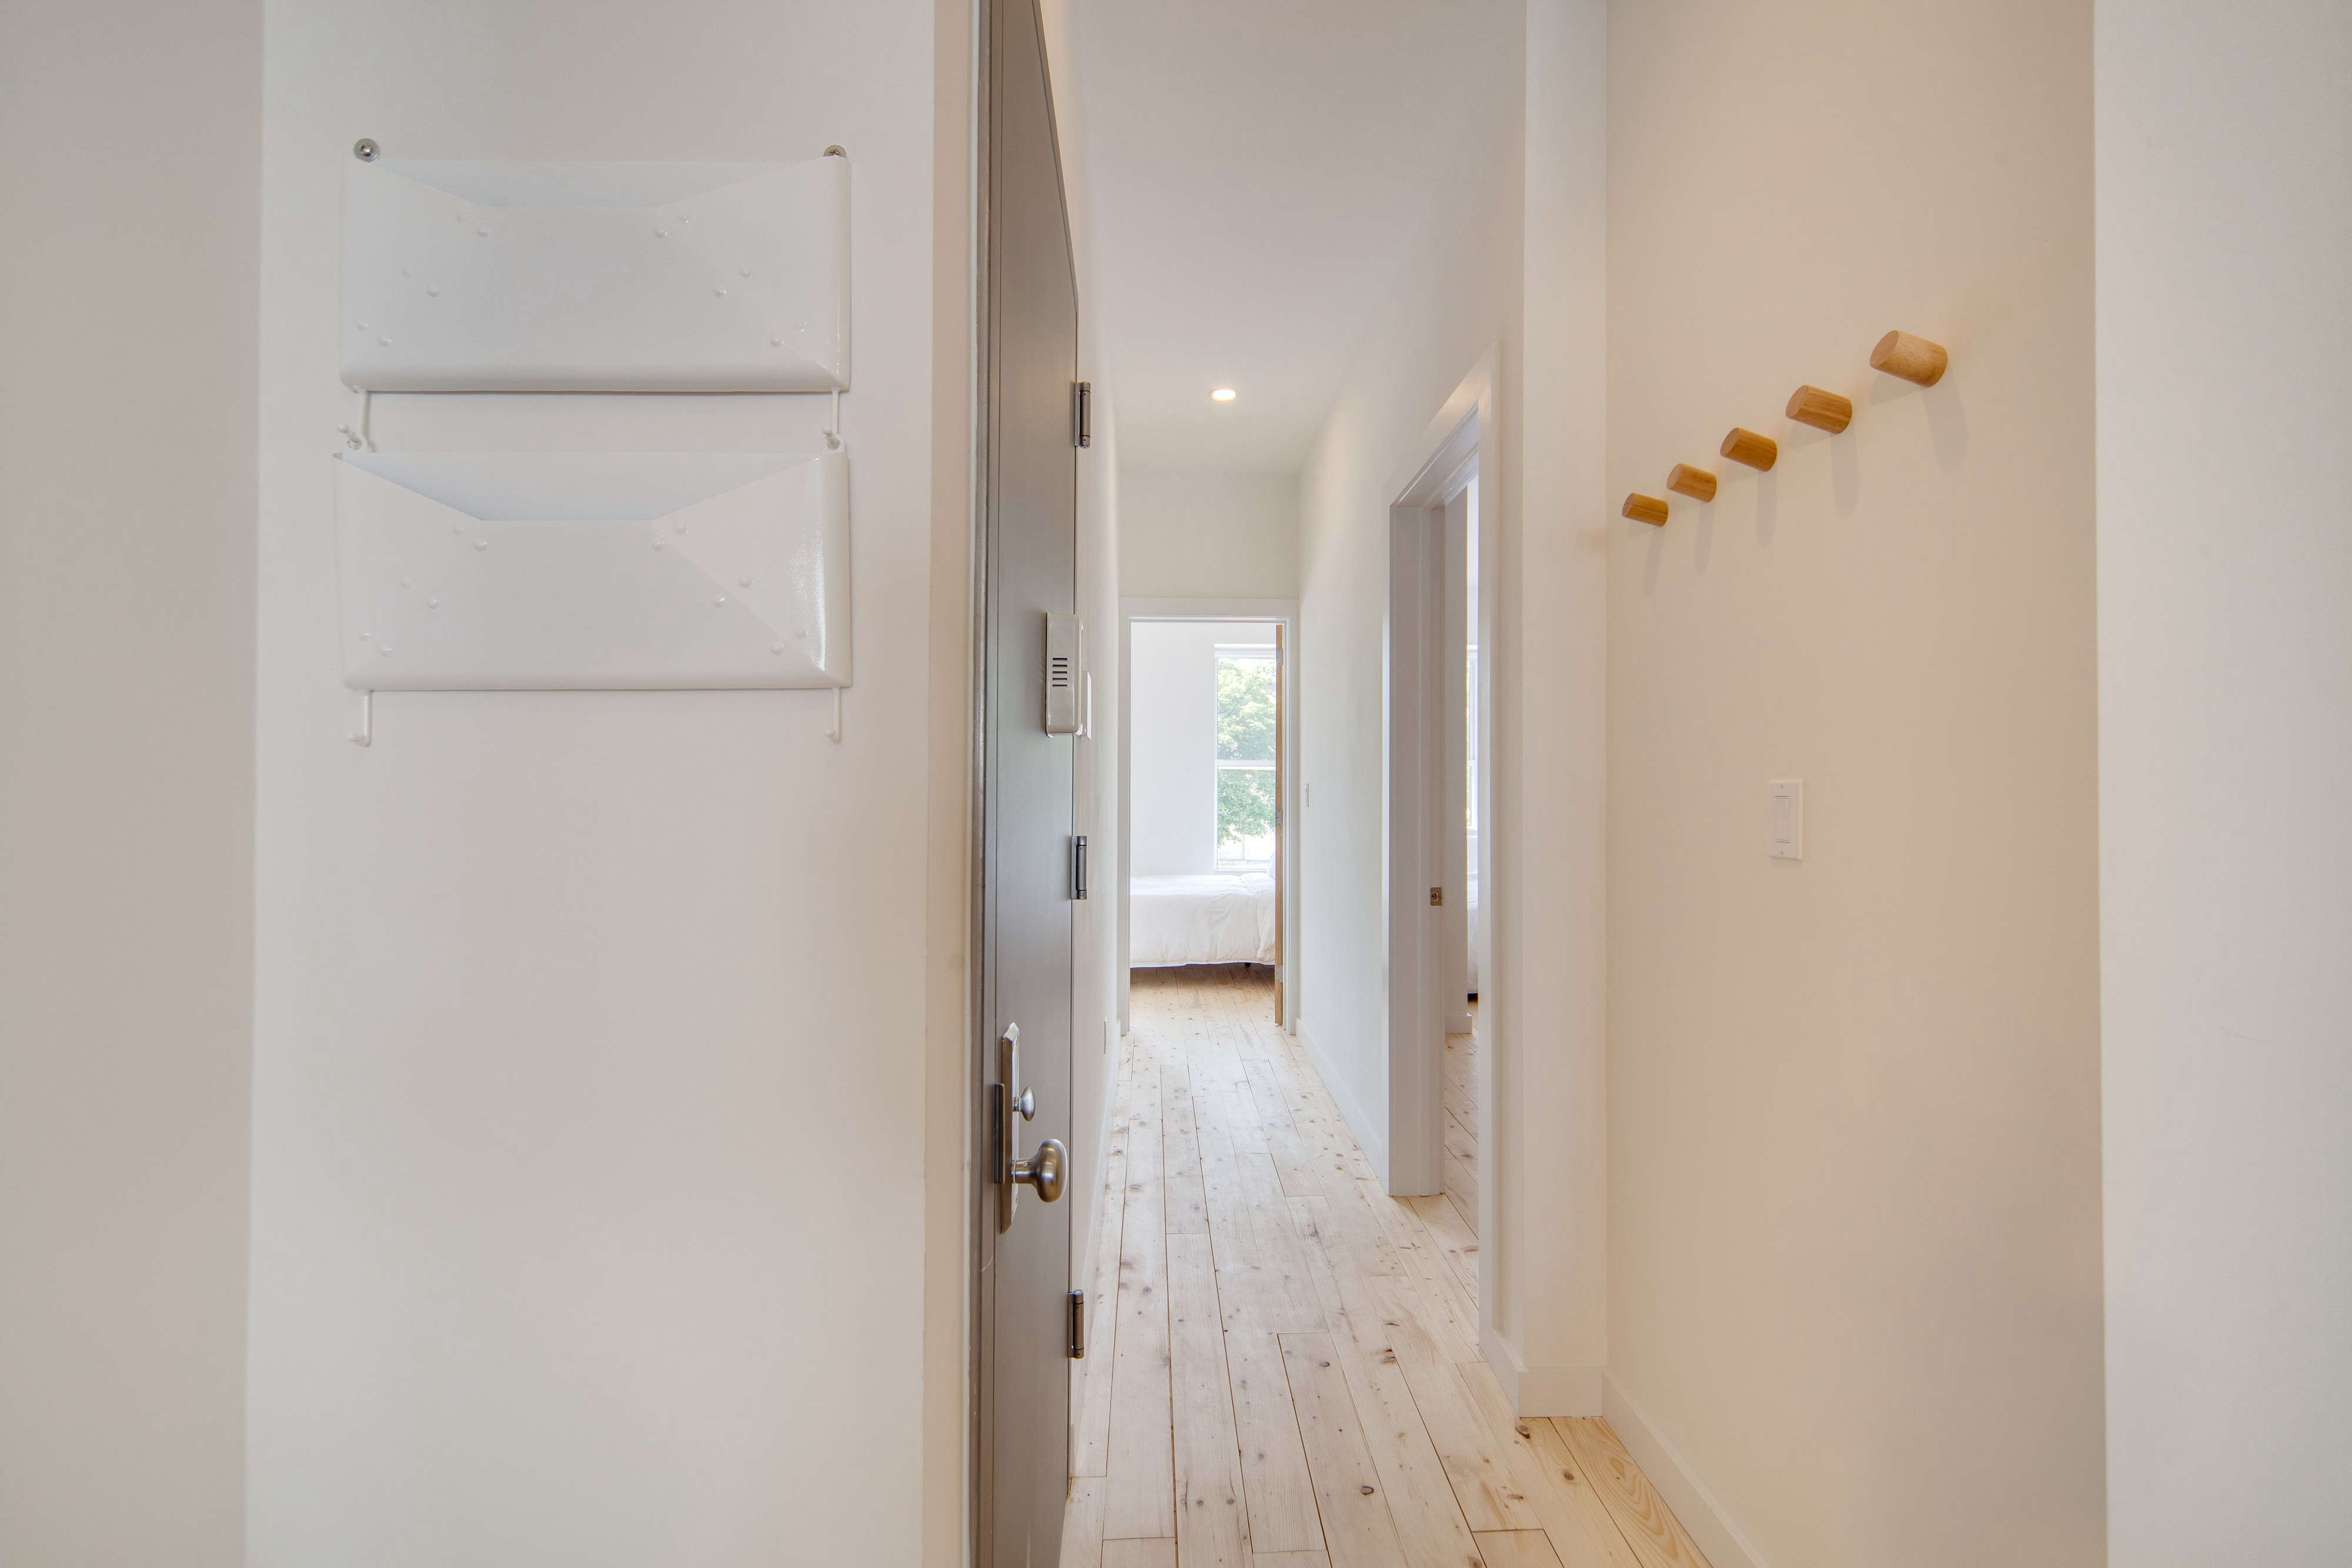 Common Co-Living Lincoln Hallway